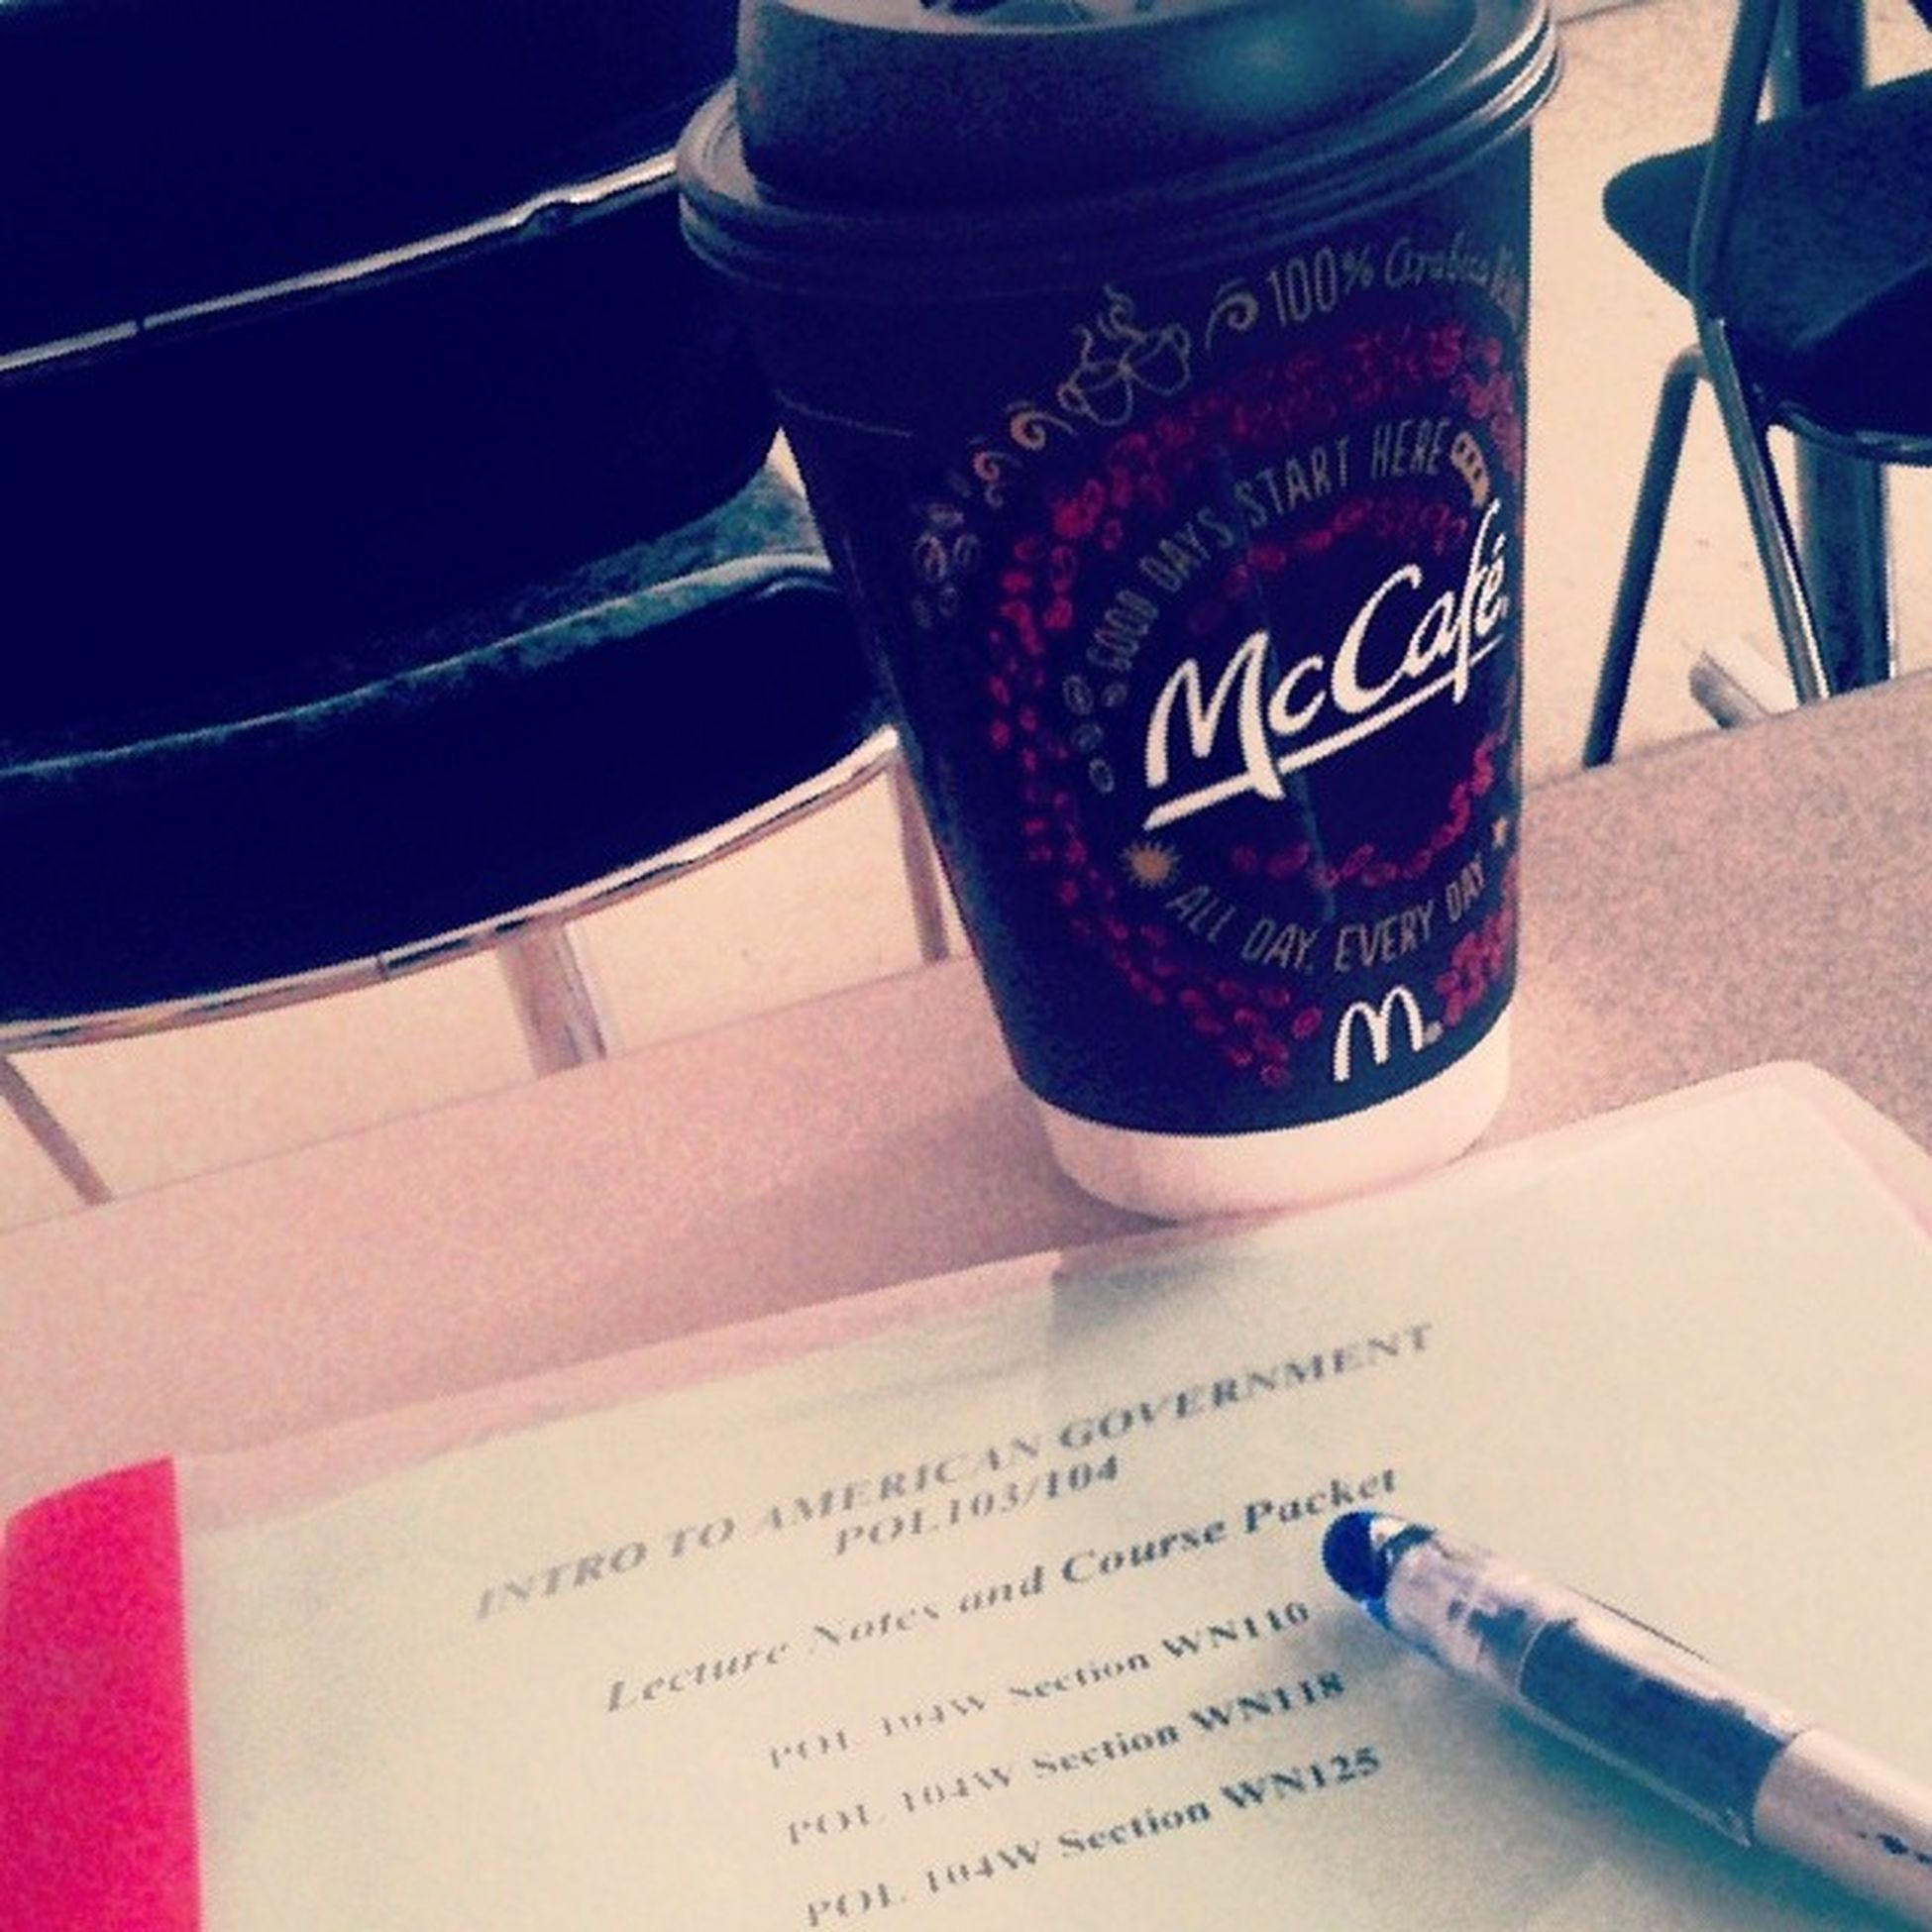 McCafe College Pospol Uhg thisclassucks